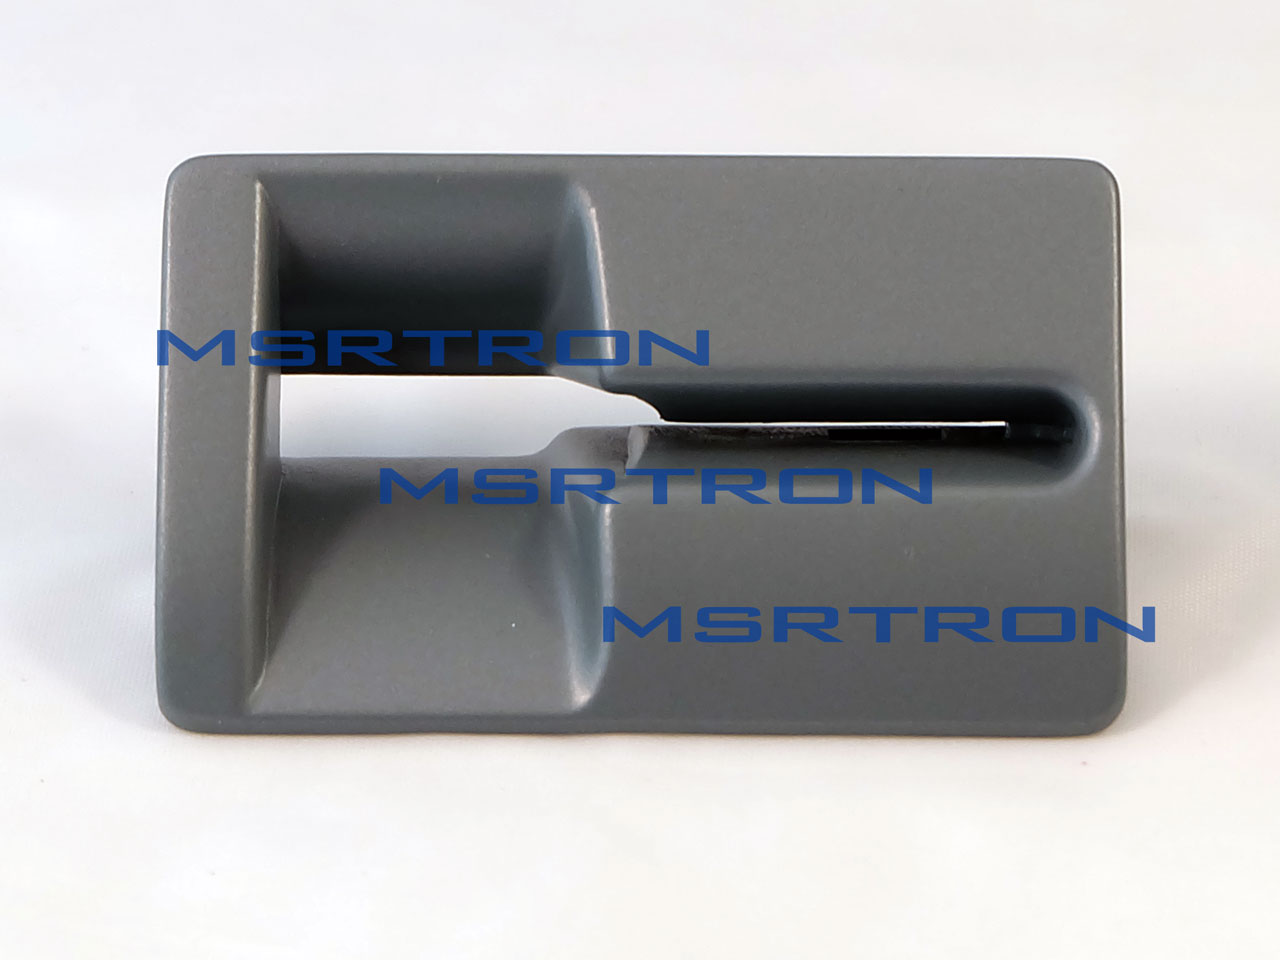 WN002 ATM Bezel Overlay Fits Wincor Nixdorf Style ATMs!